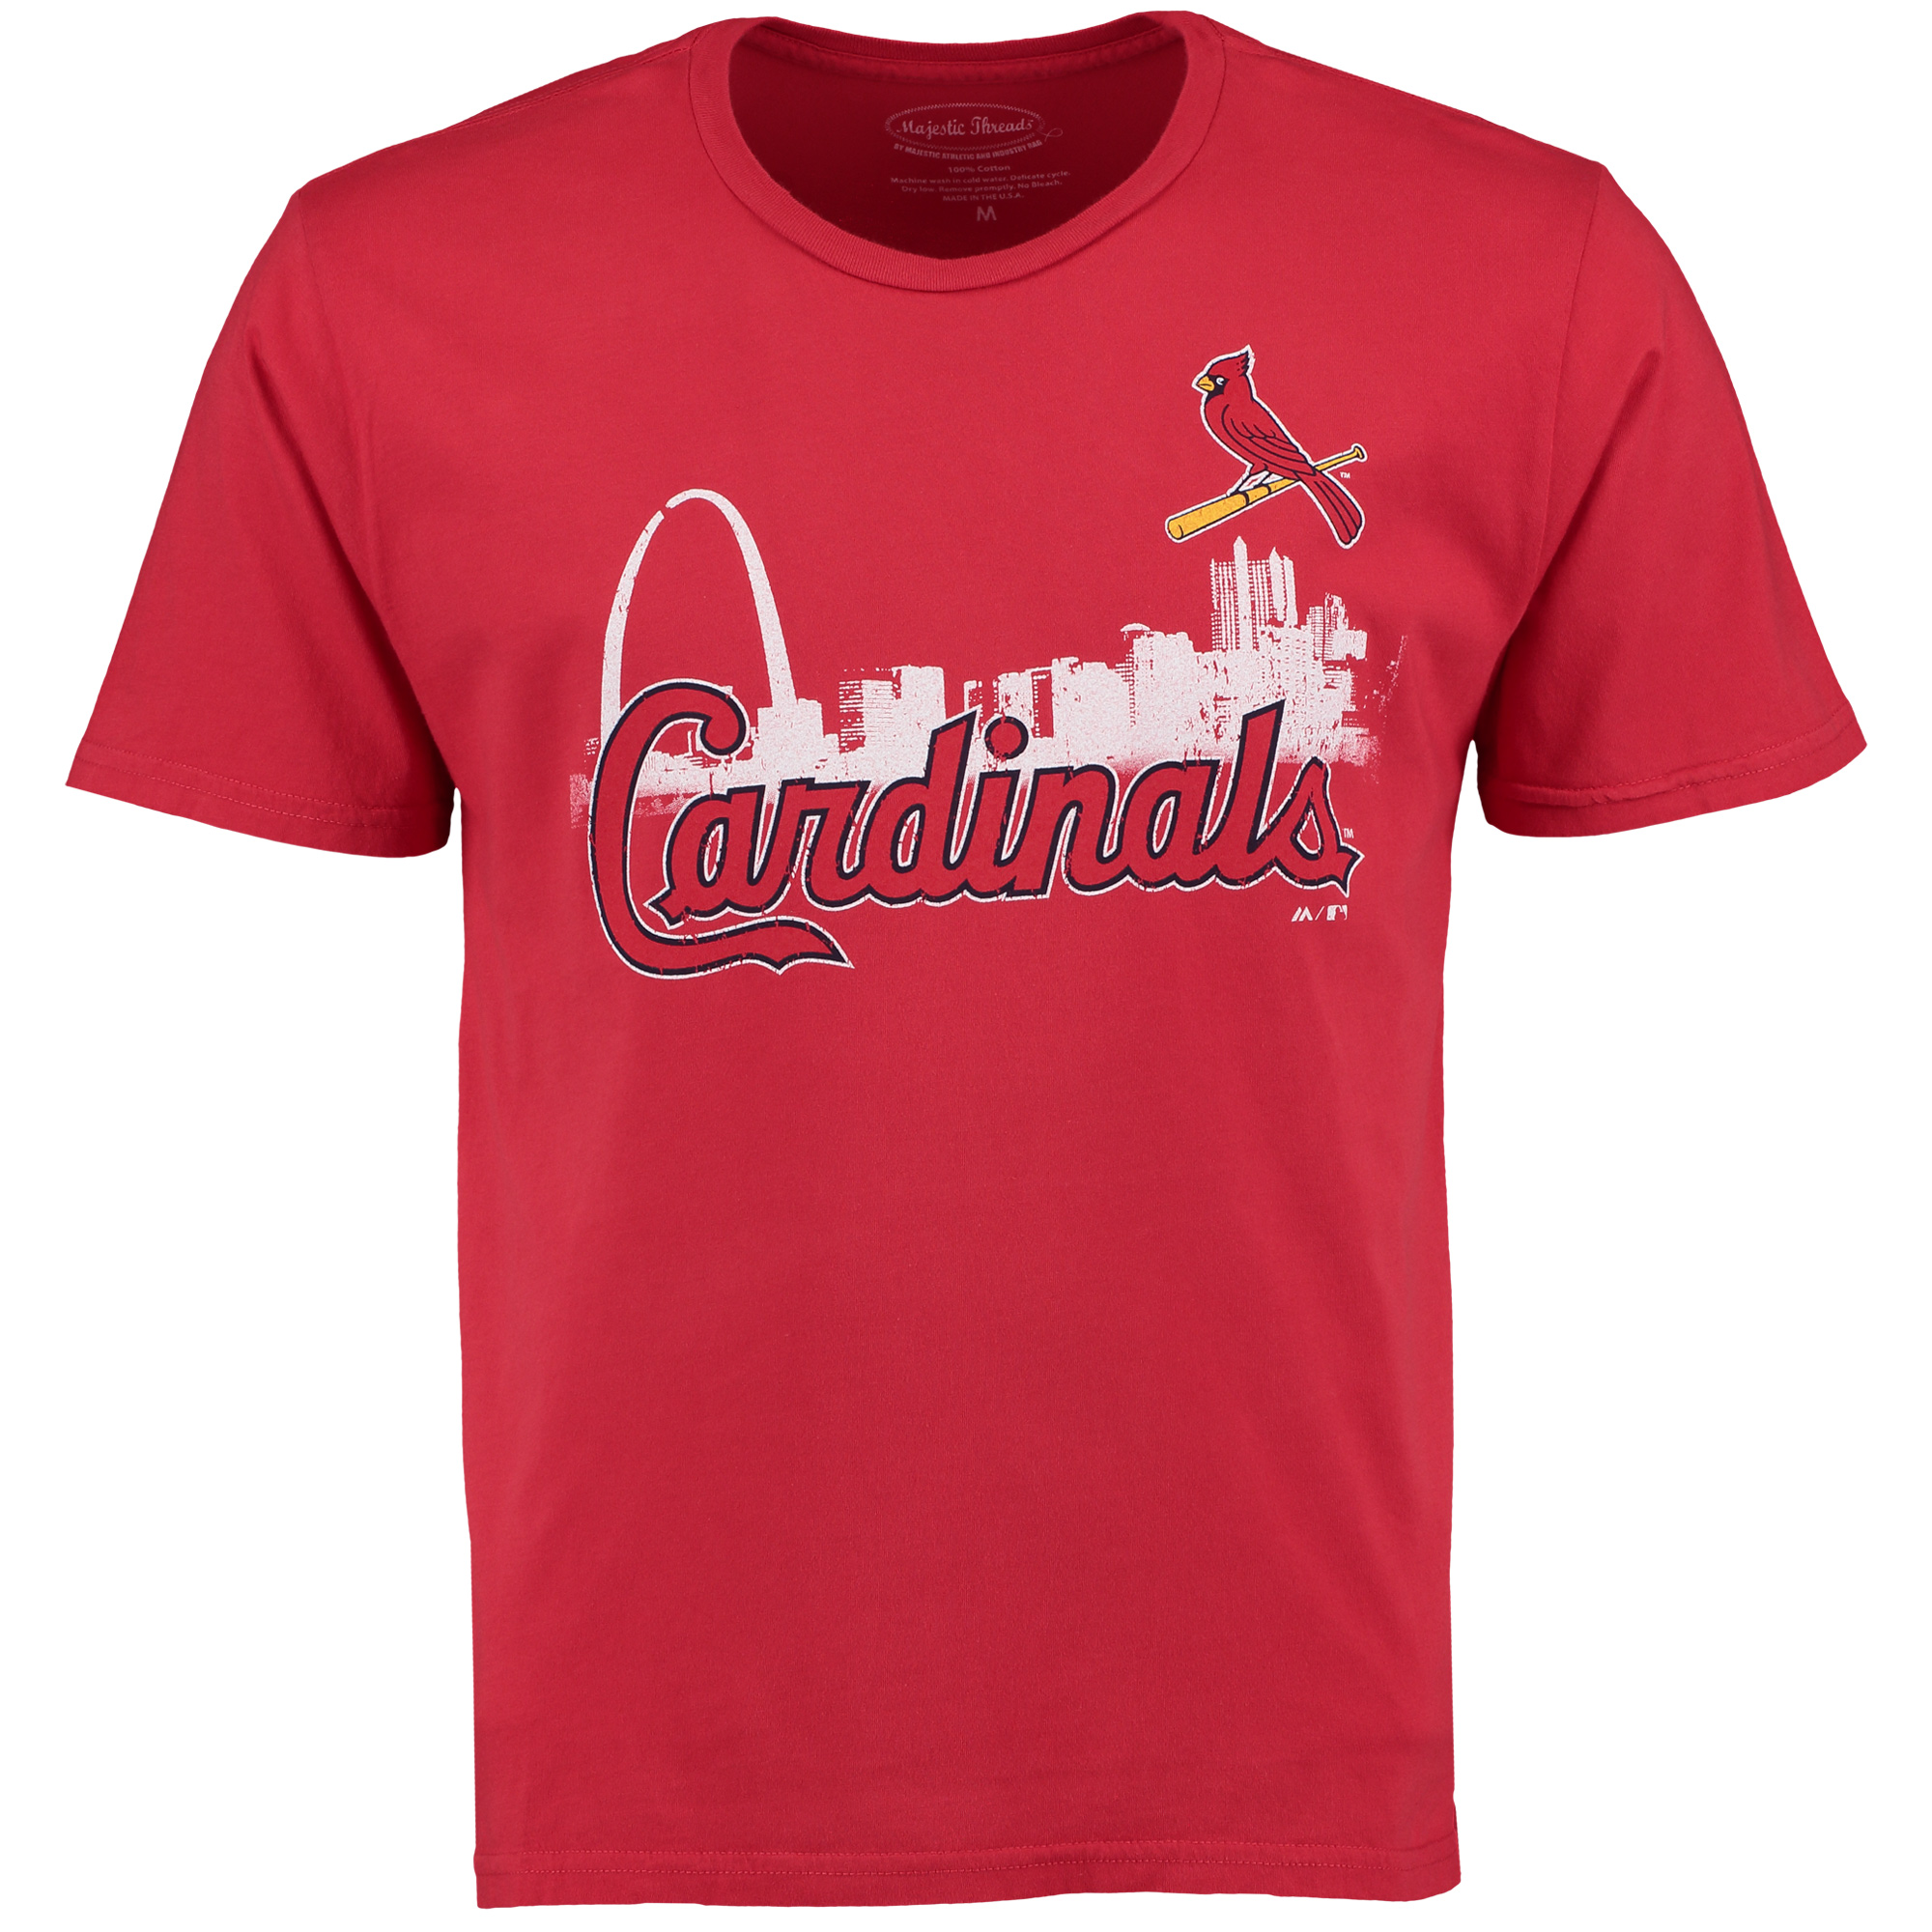 St. Louis Cardinals Majestic Threads City Skyline Softhand Tri-Blend T-Shirt - Red